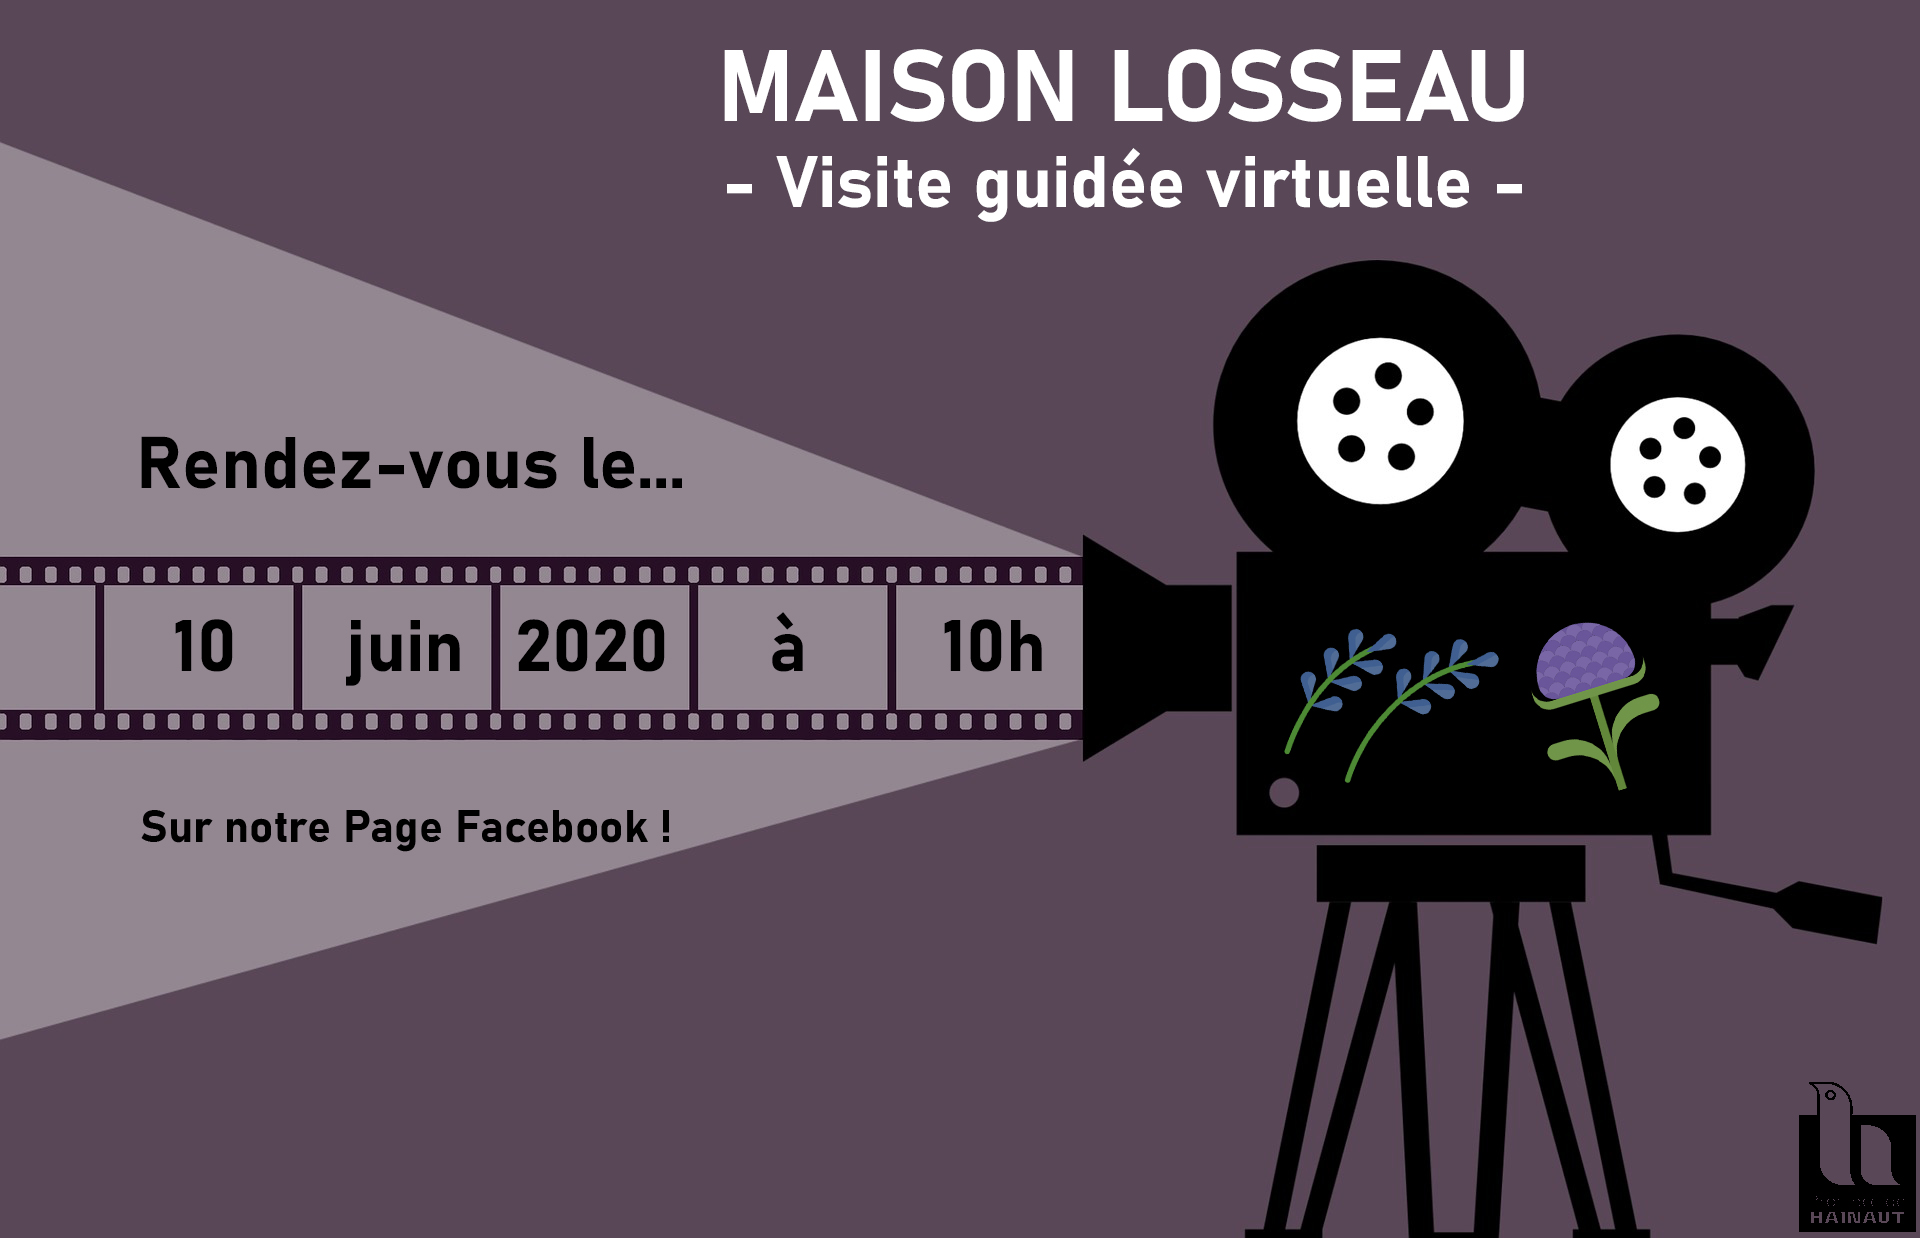 Visite guidée virtuelle de la Maison Losseau